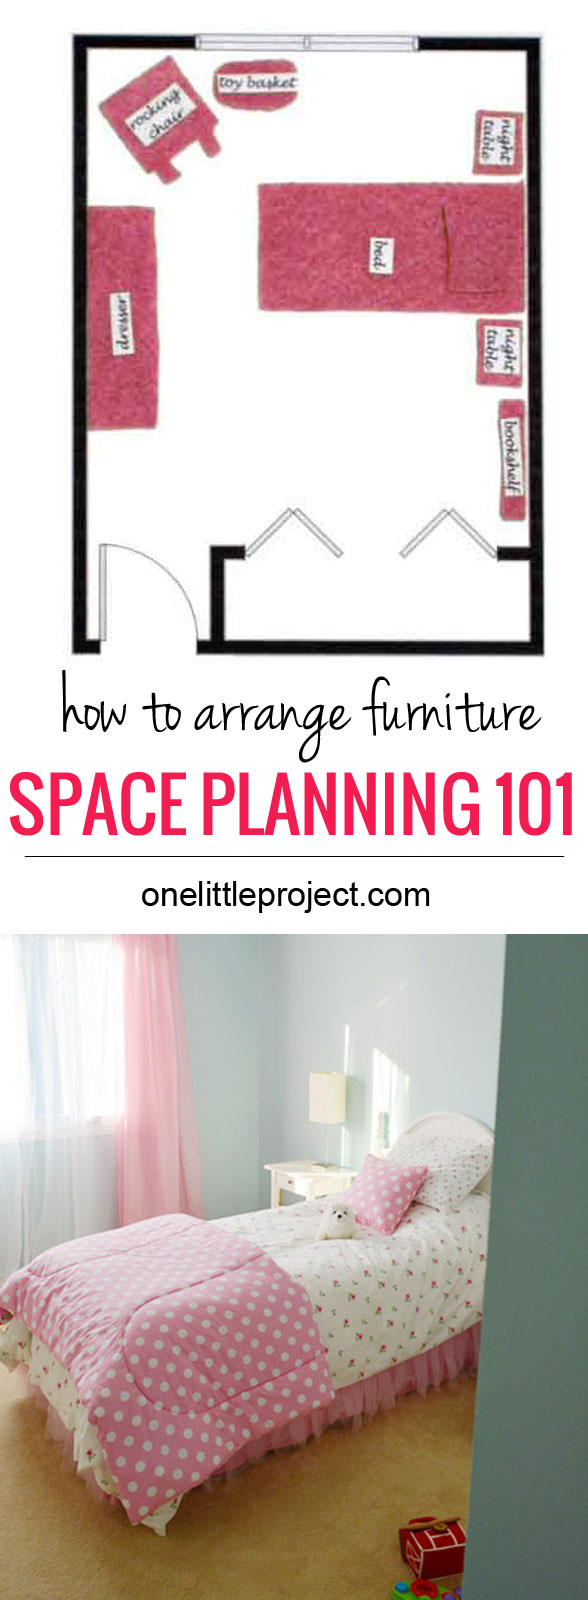 How To Arrange Living Room Furniture With